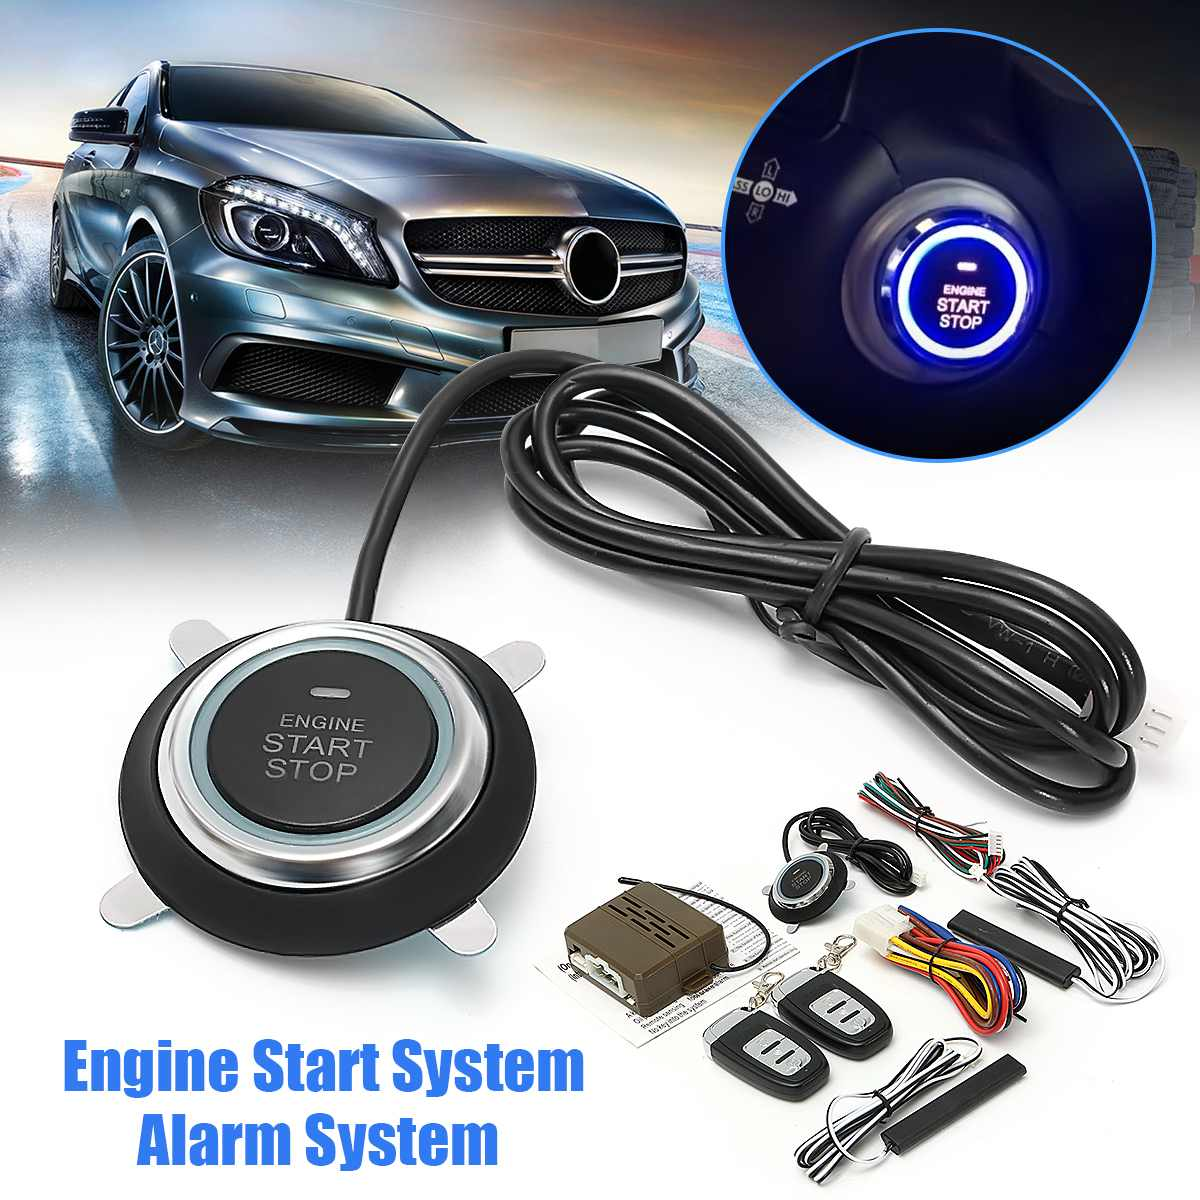 Safurance Car-Accessories Start-System Anti-Theft-Security-System Auto Keyless Push-Button